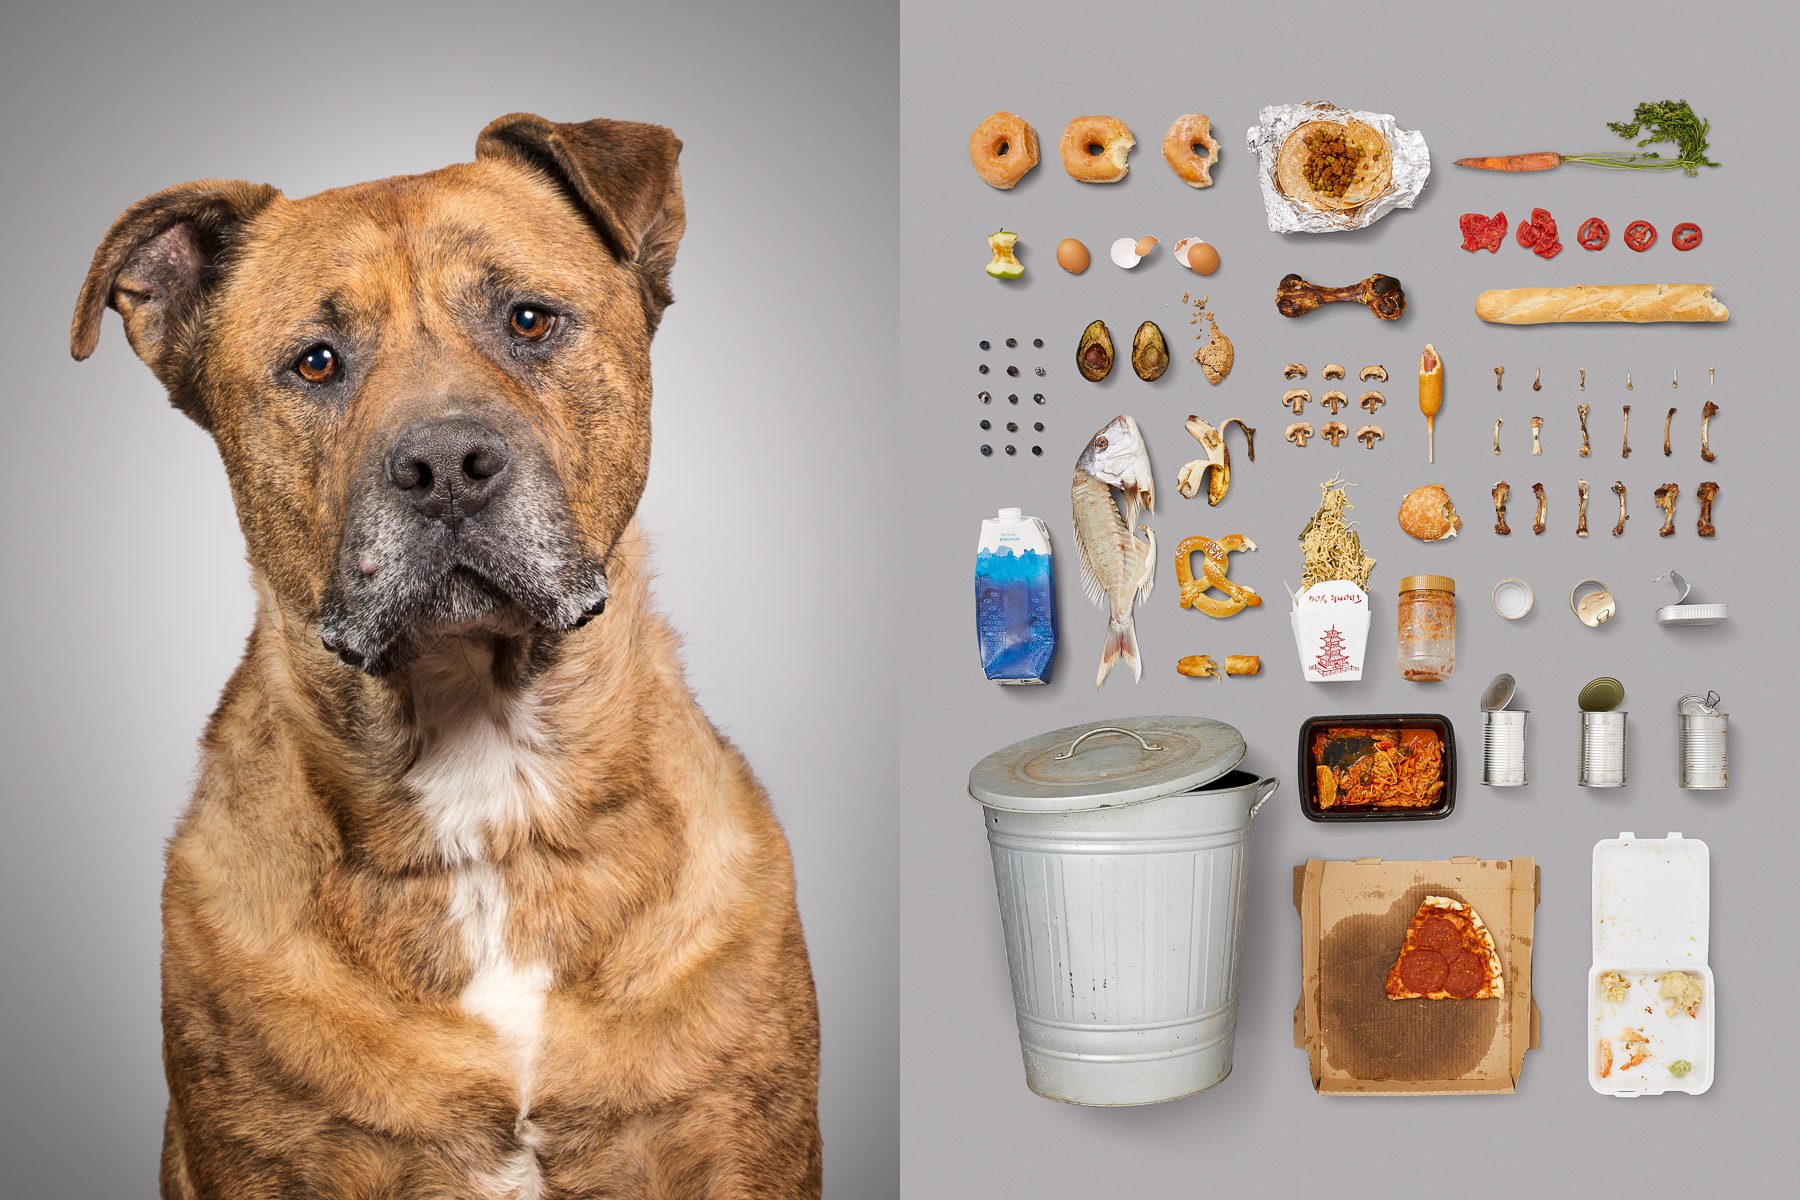 Stray-abandoned-street-dog-rescued-series-dog-portraits-knolling-rotten-food-american-diet.jpg